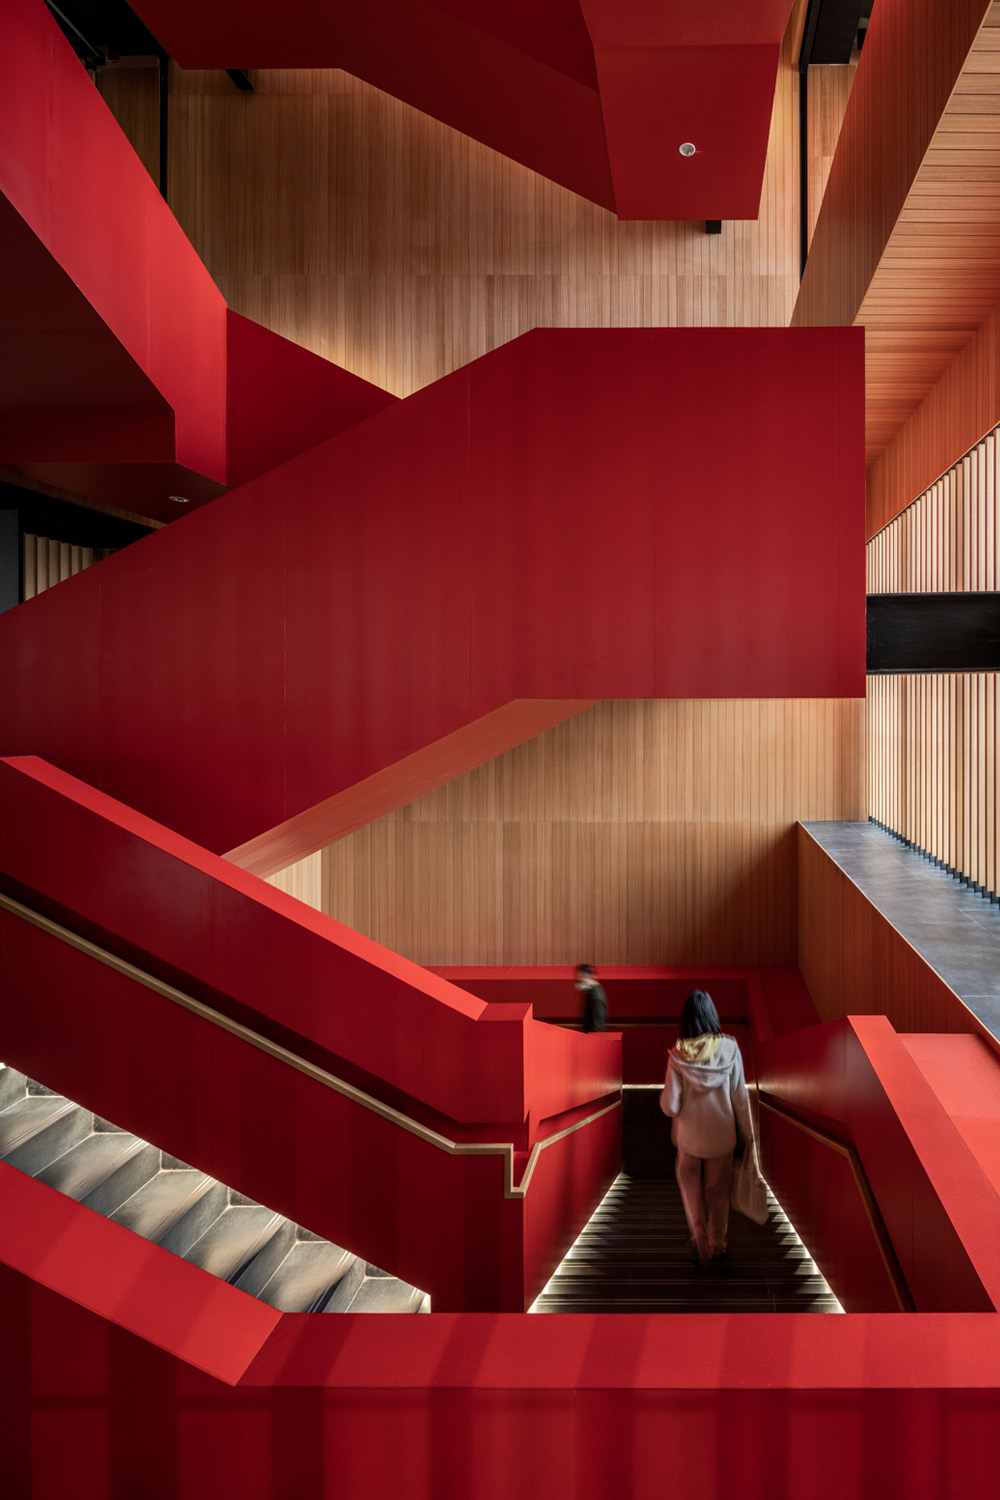 Sculptural staircase. Ethan Lee